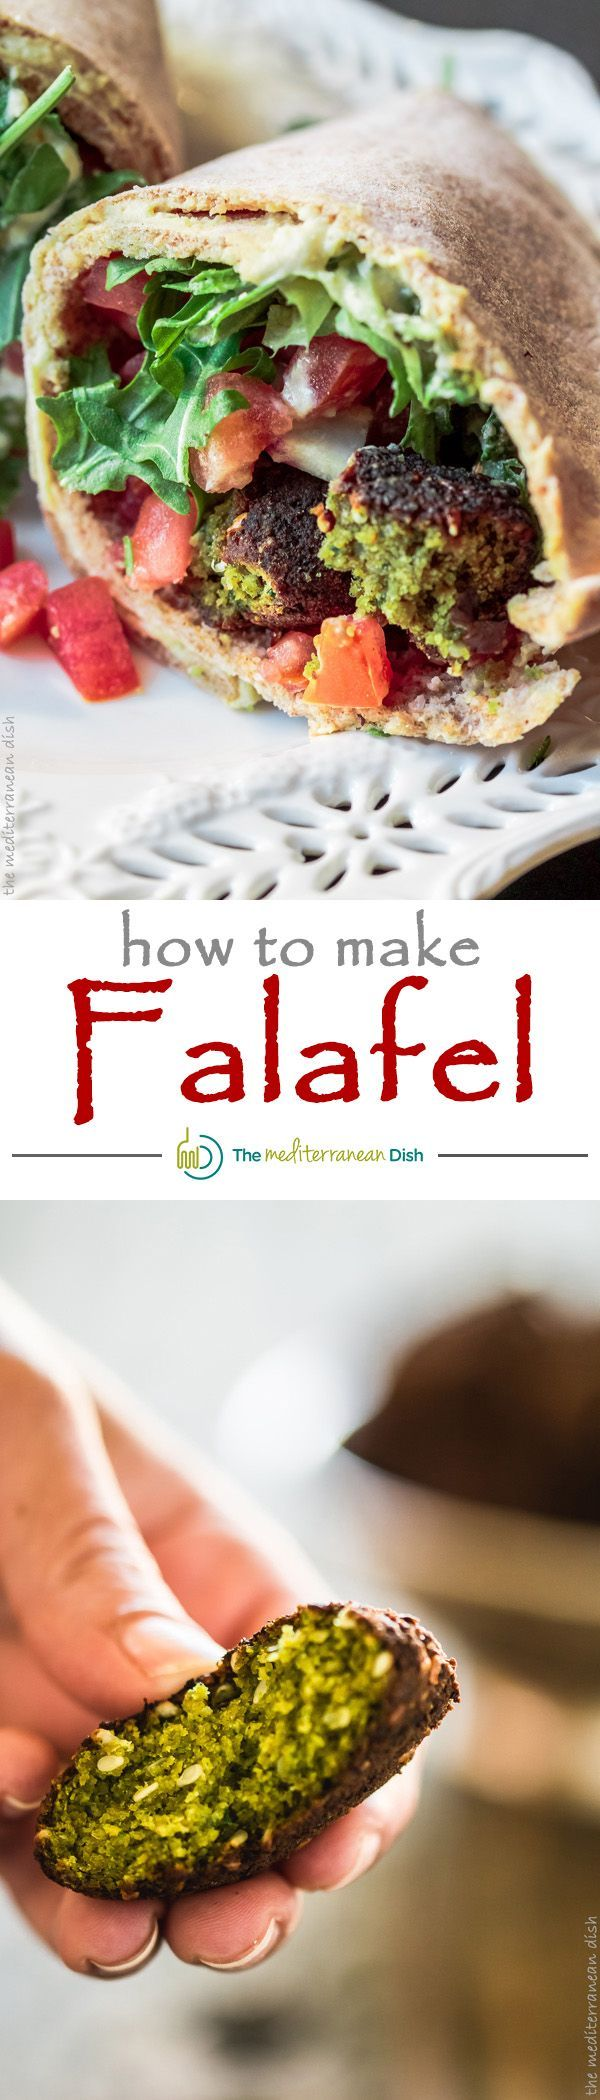 Learn how to make falafel. It is easier than you think! Here is a delicious, flavor-packed and authentic recipe with step-by-step photos from The Mediterranean Dish!